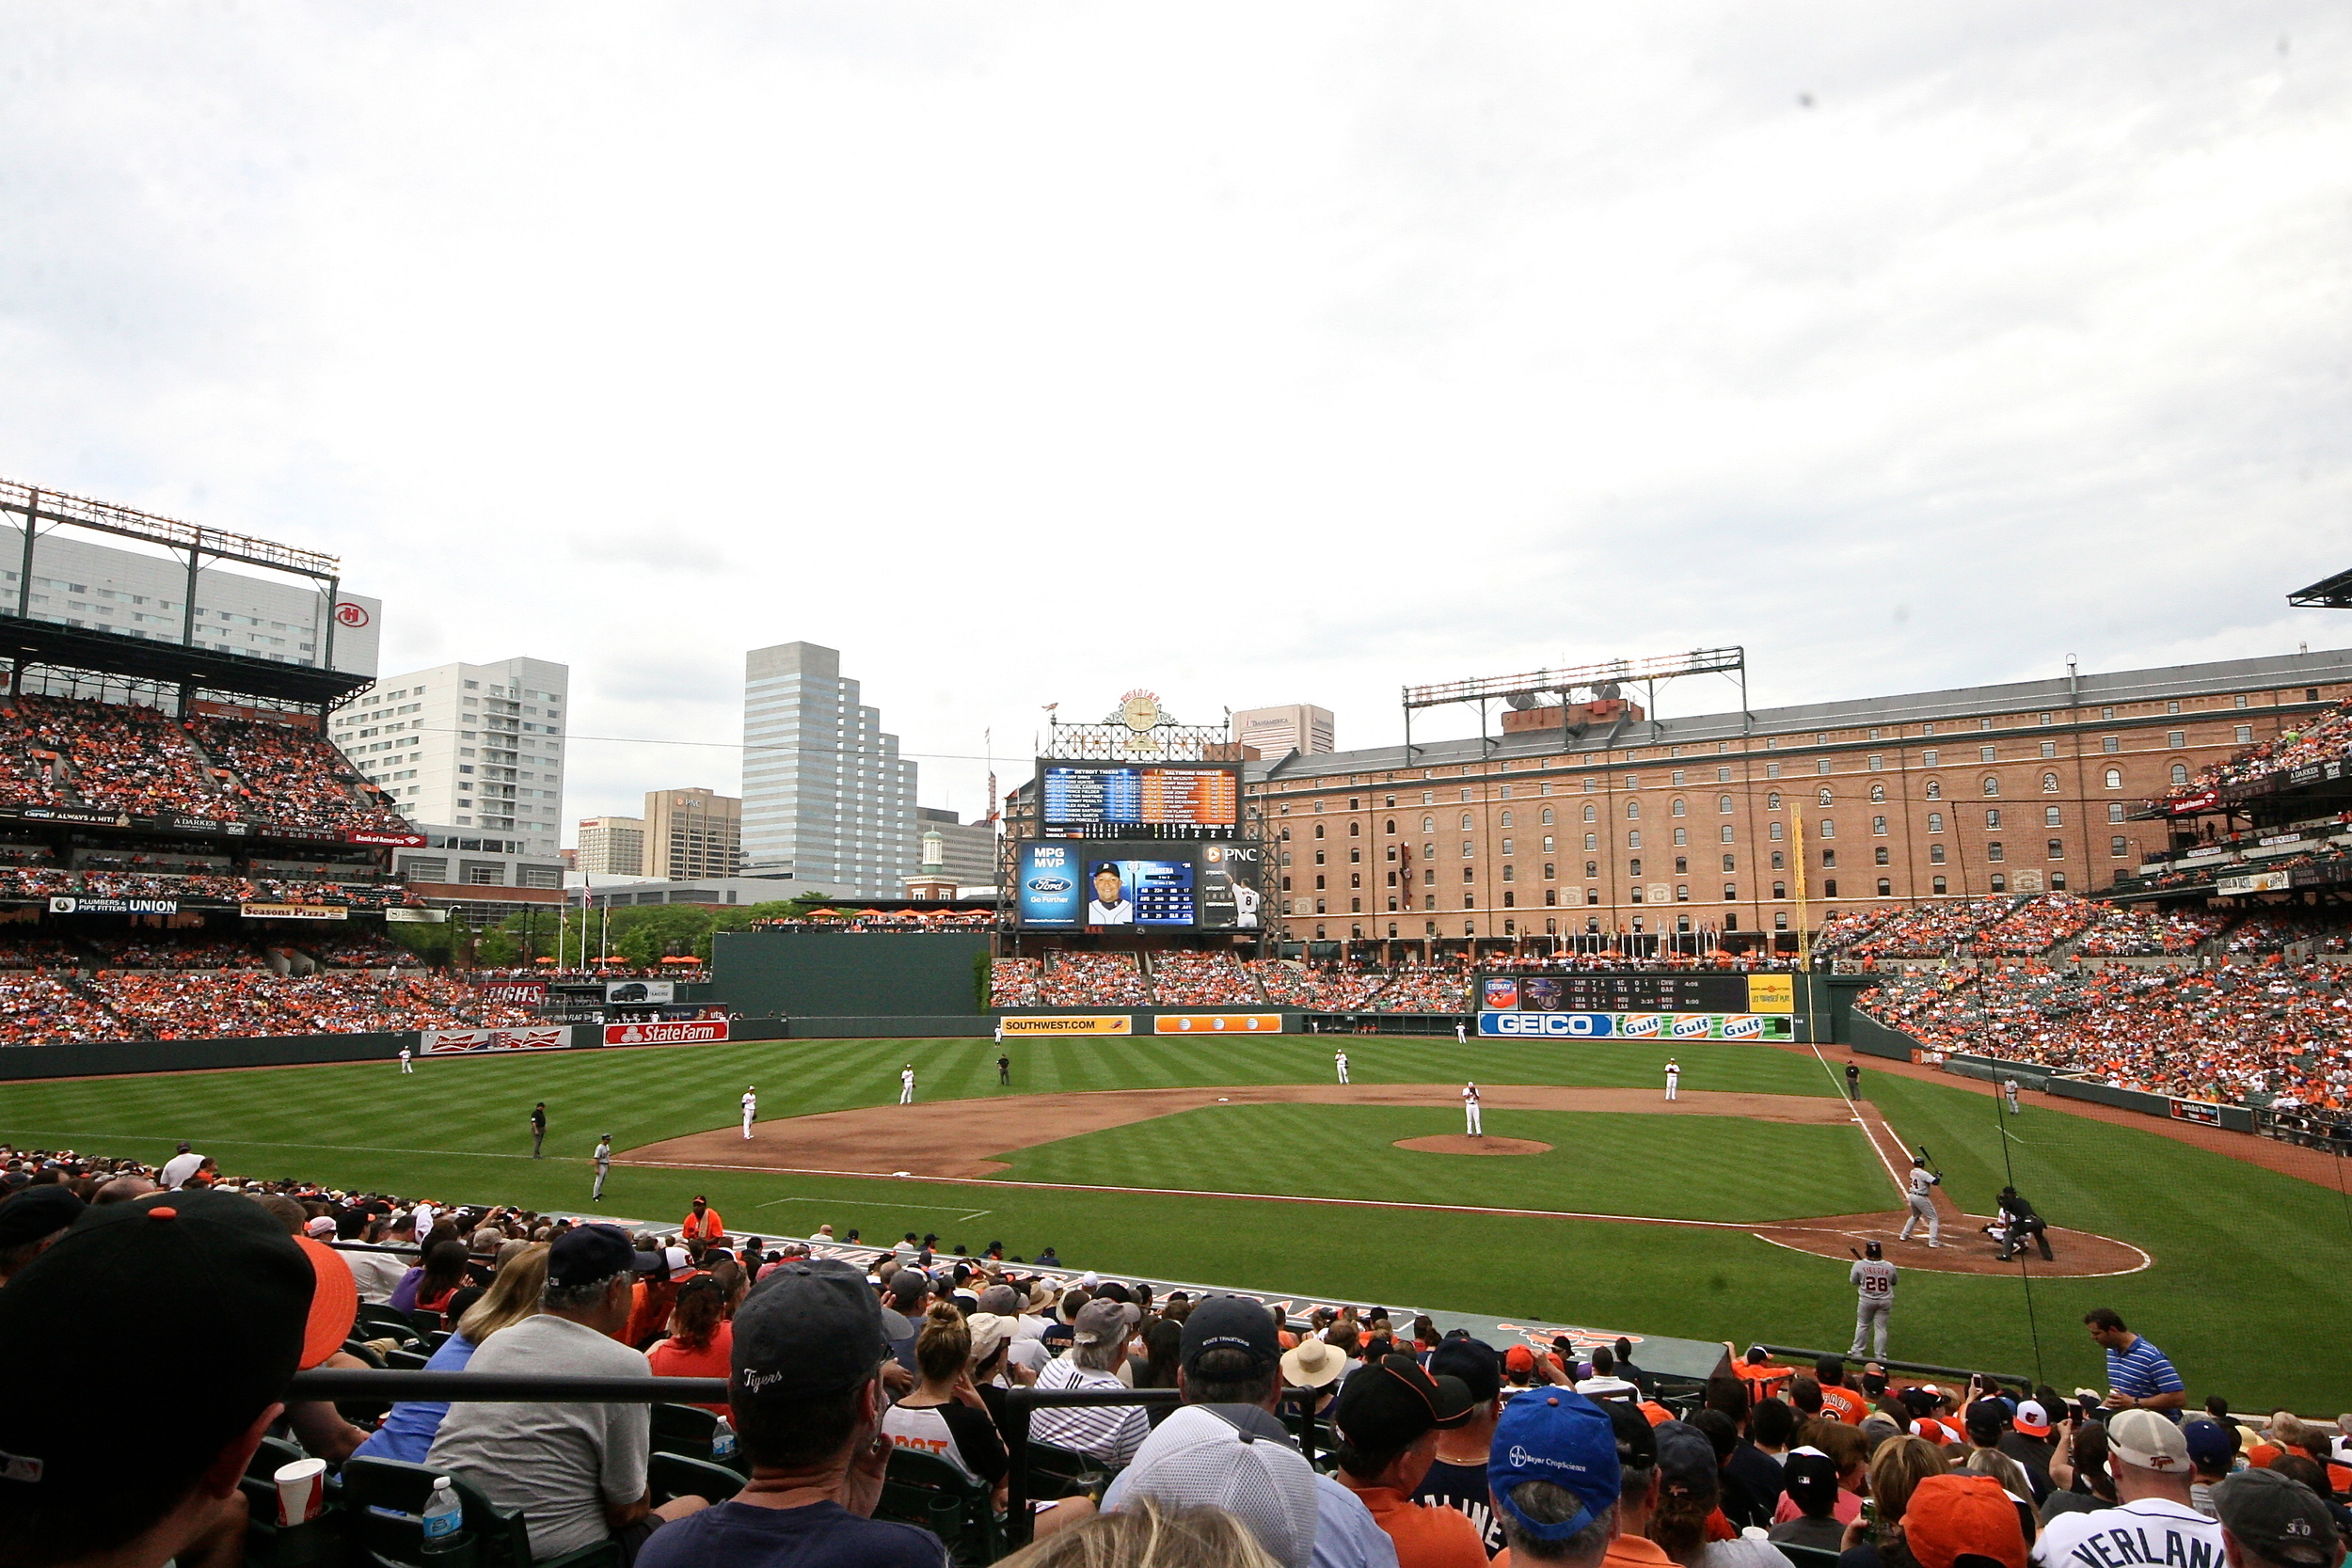 Game two at Camden Yards